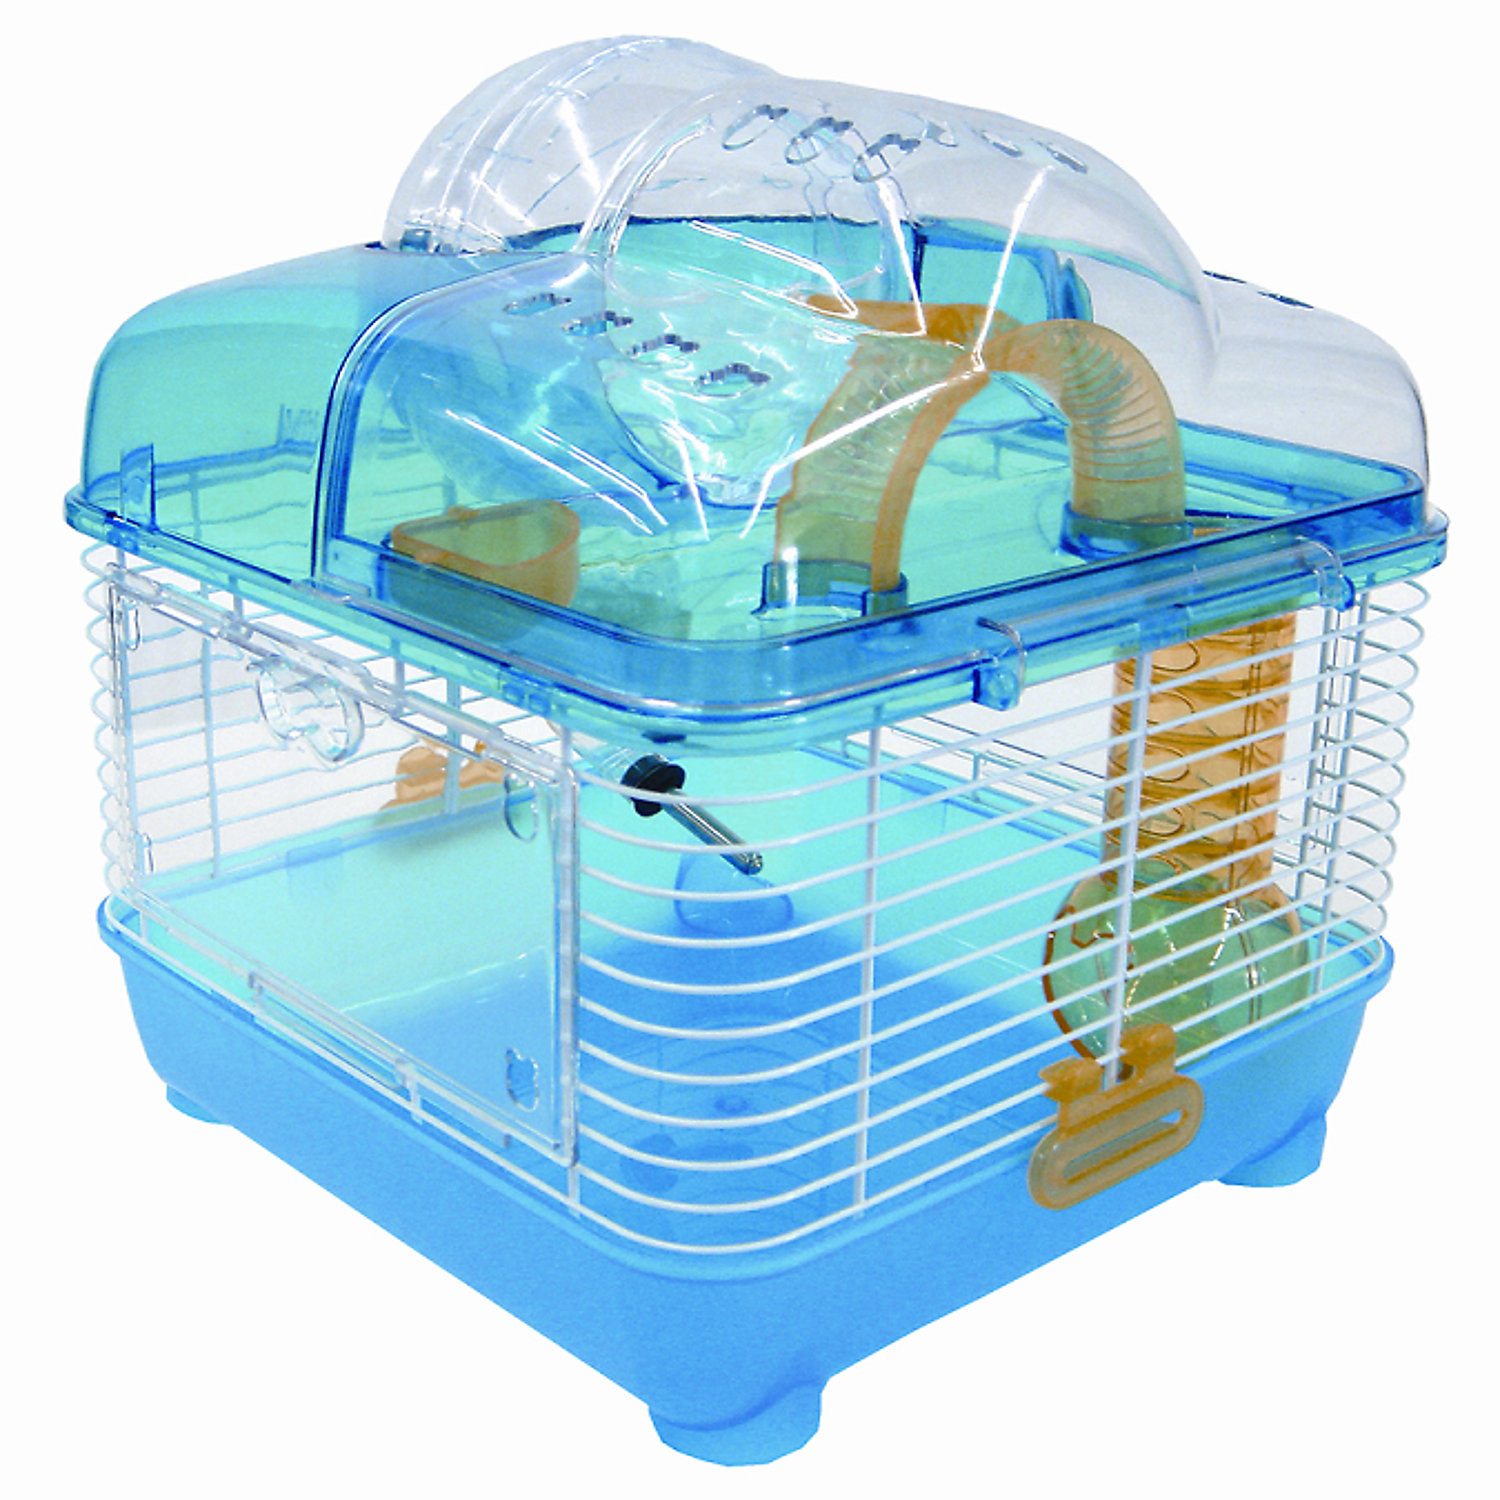 Image of YML Blue Hamster Cage